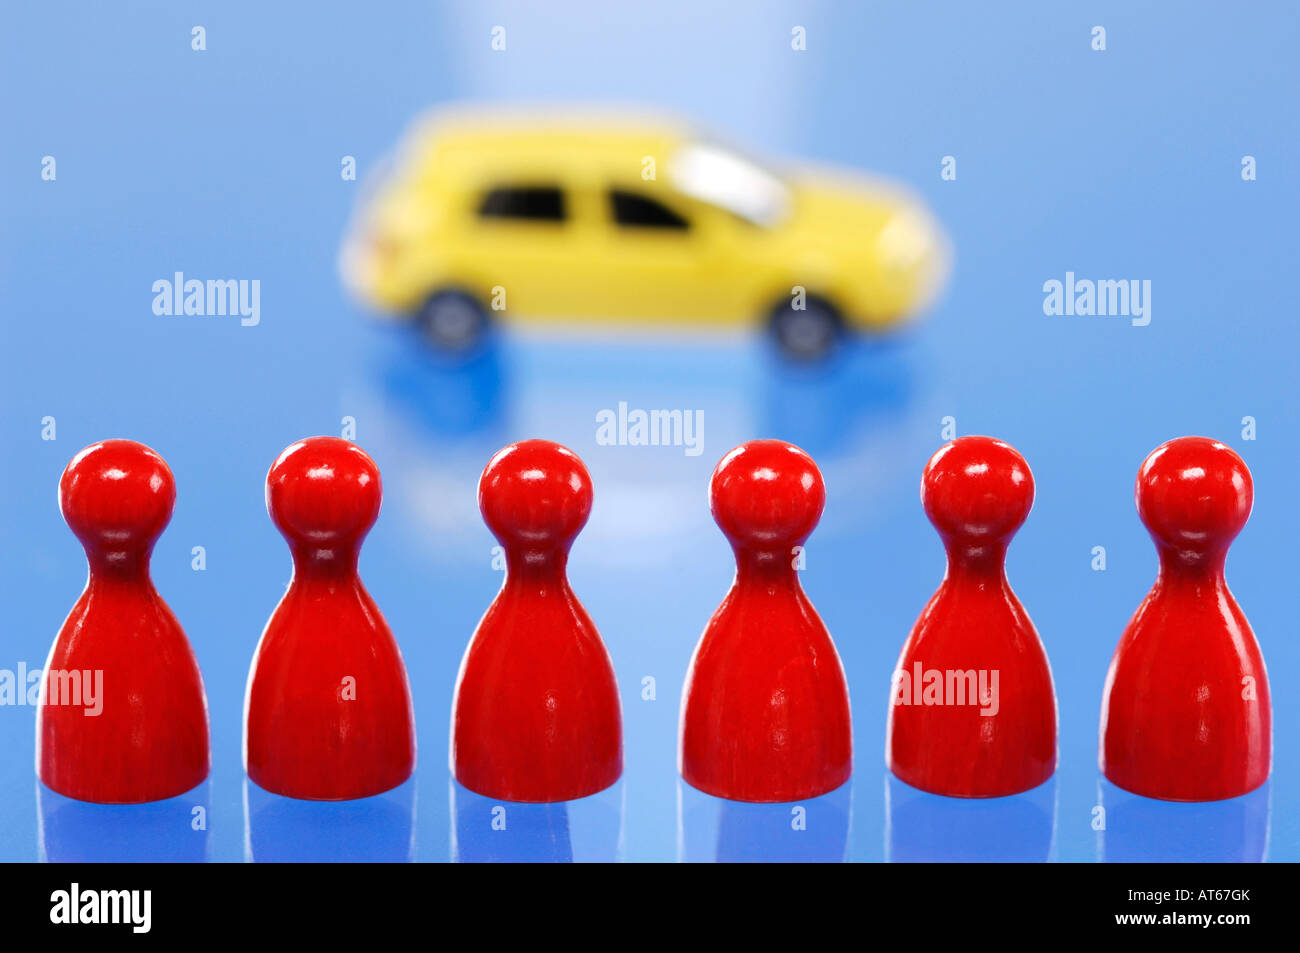 Game pieces in a row, toy car in background - Stock Image